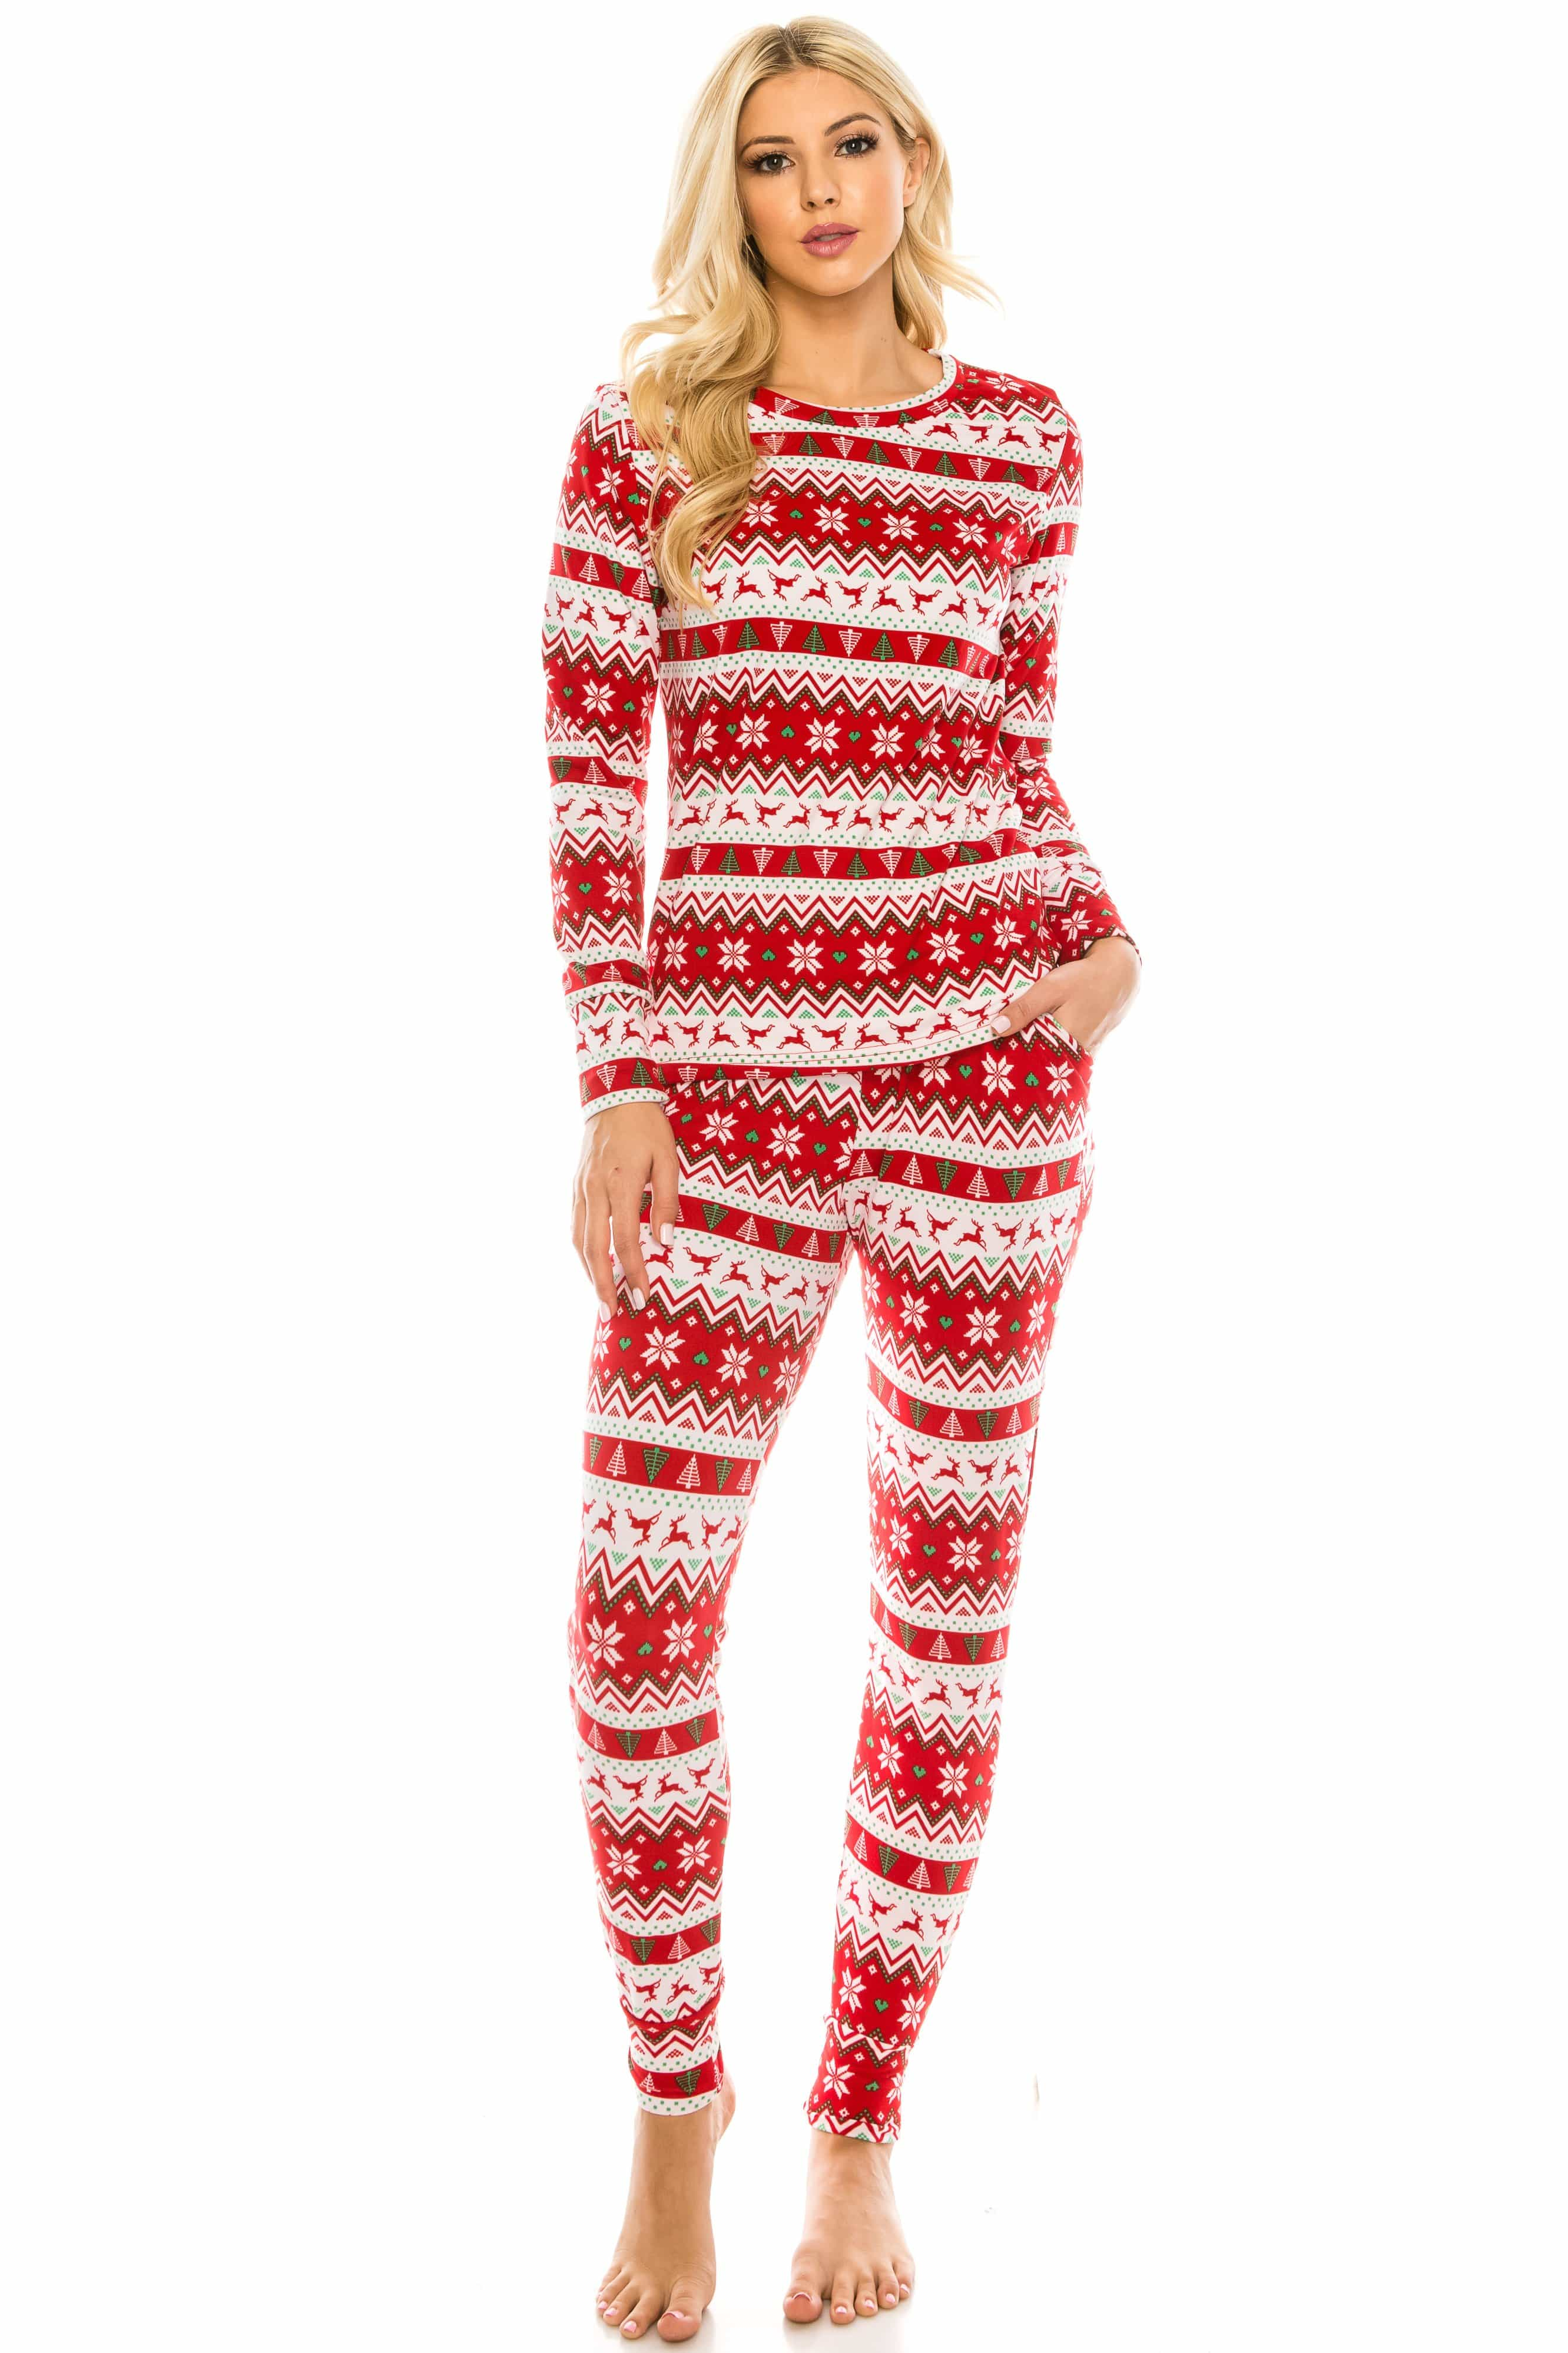 DAILYHAUTE WOMEN LOUNGE SET RED SWEATER / S Women's Cozy Christmas Fleece-Lined 2-Piece Matching Jogger Sets